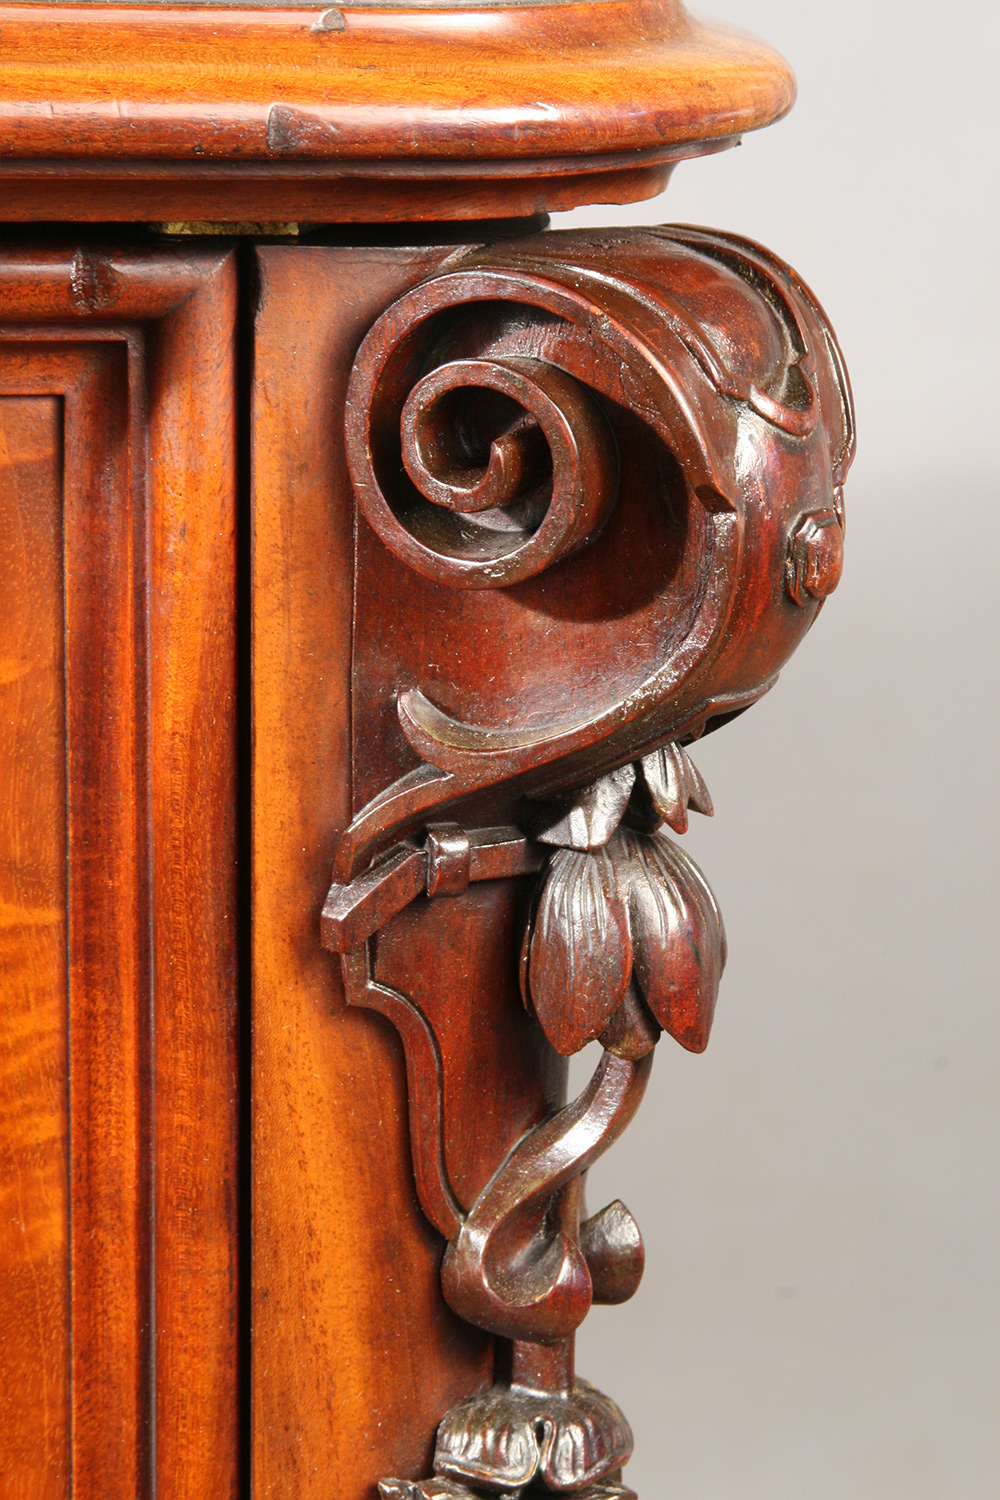 An intricately carved floral garland embellishment, seen after restoration